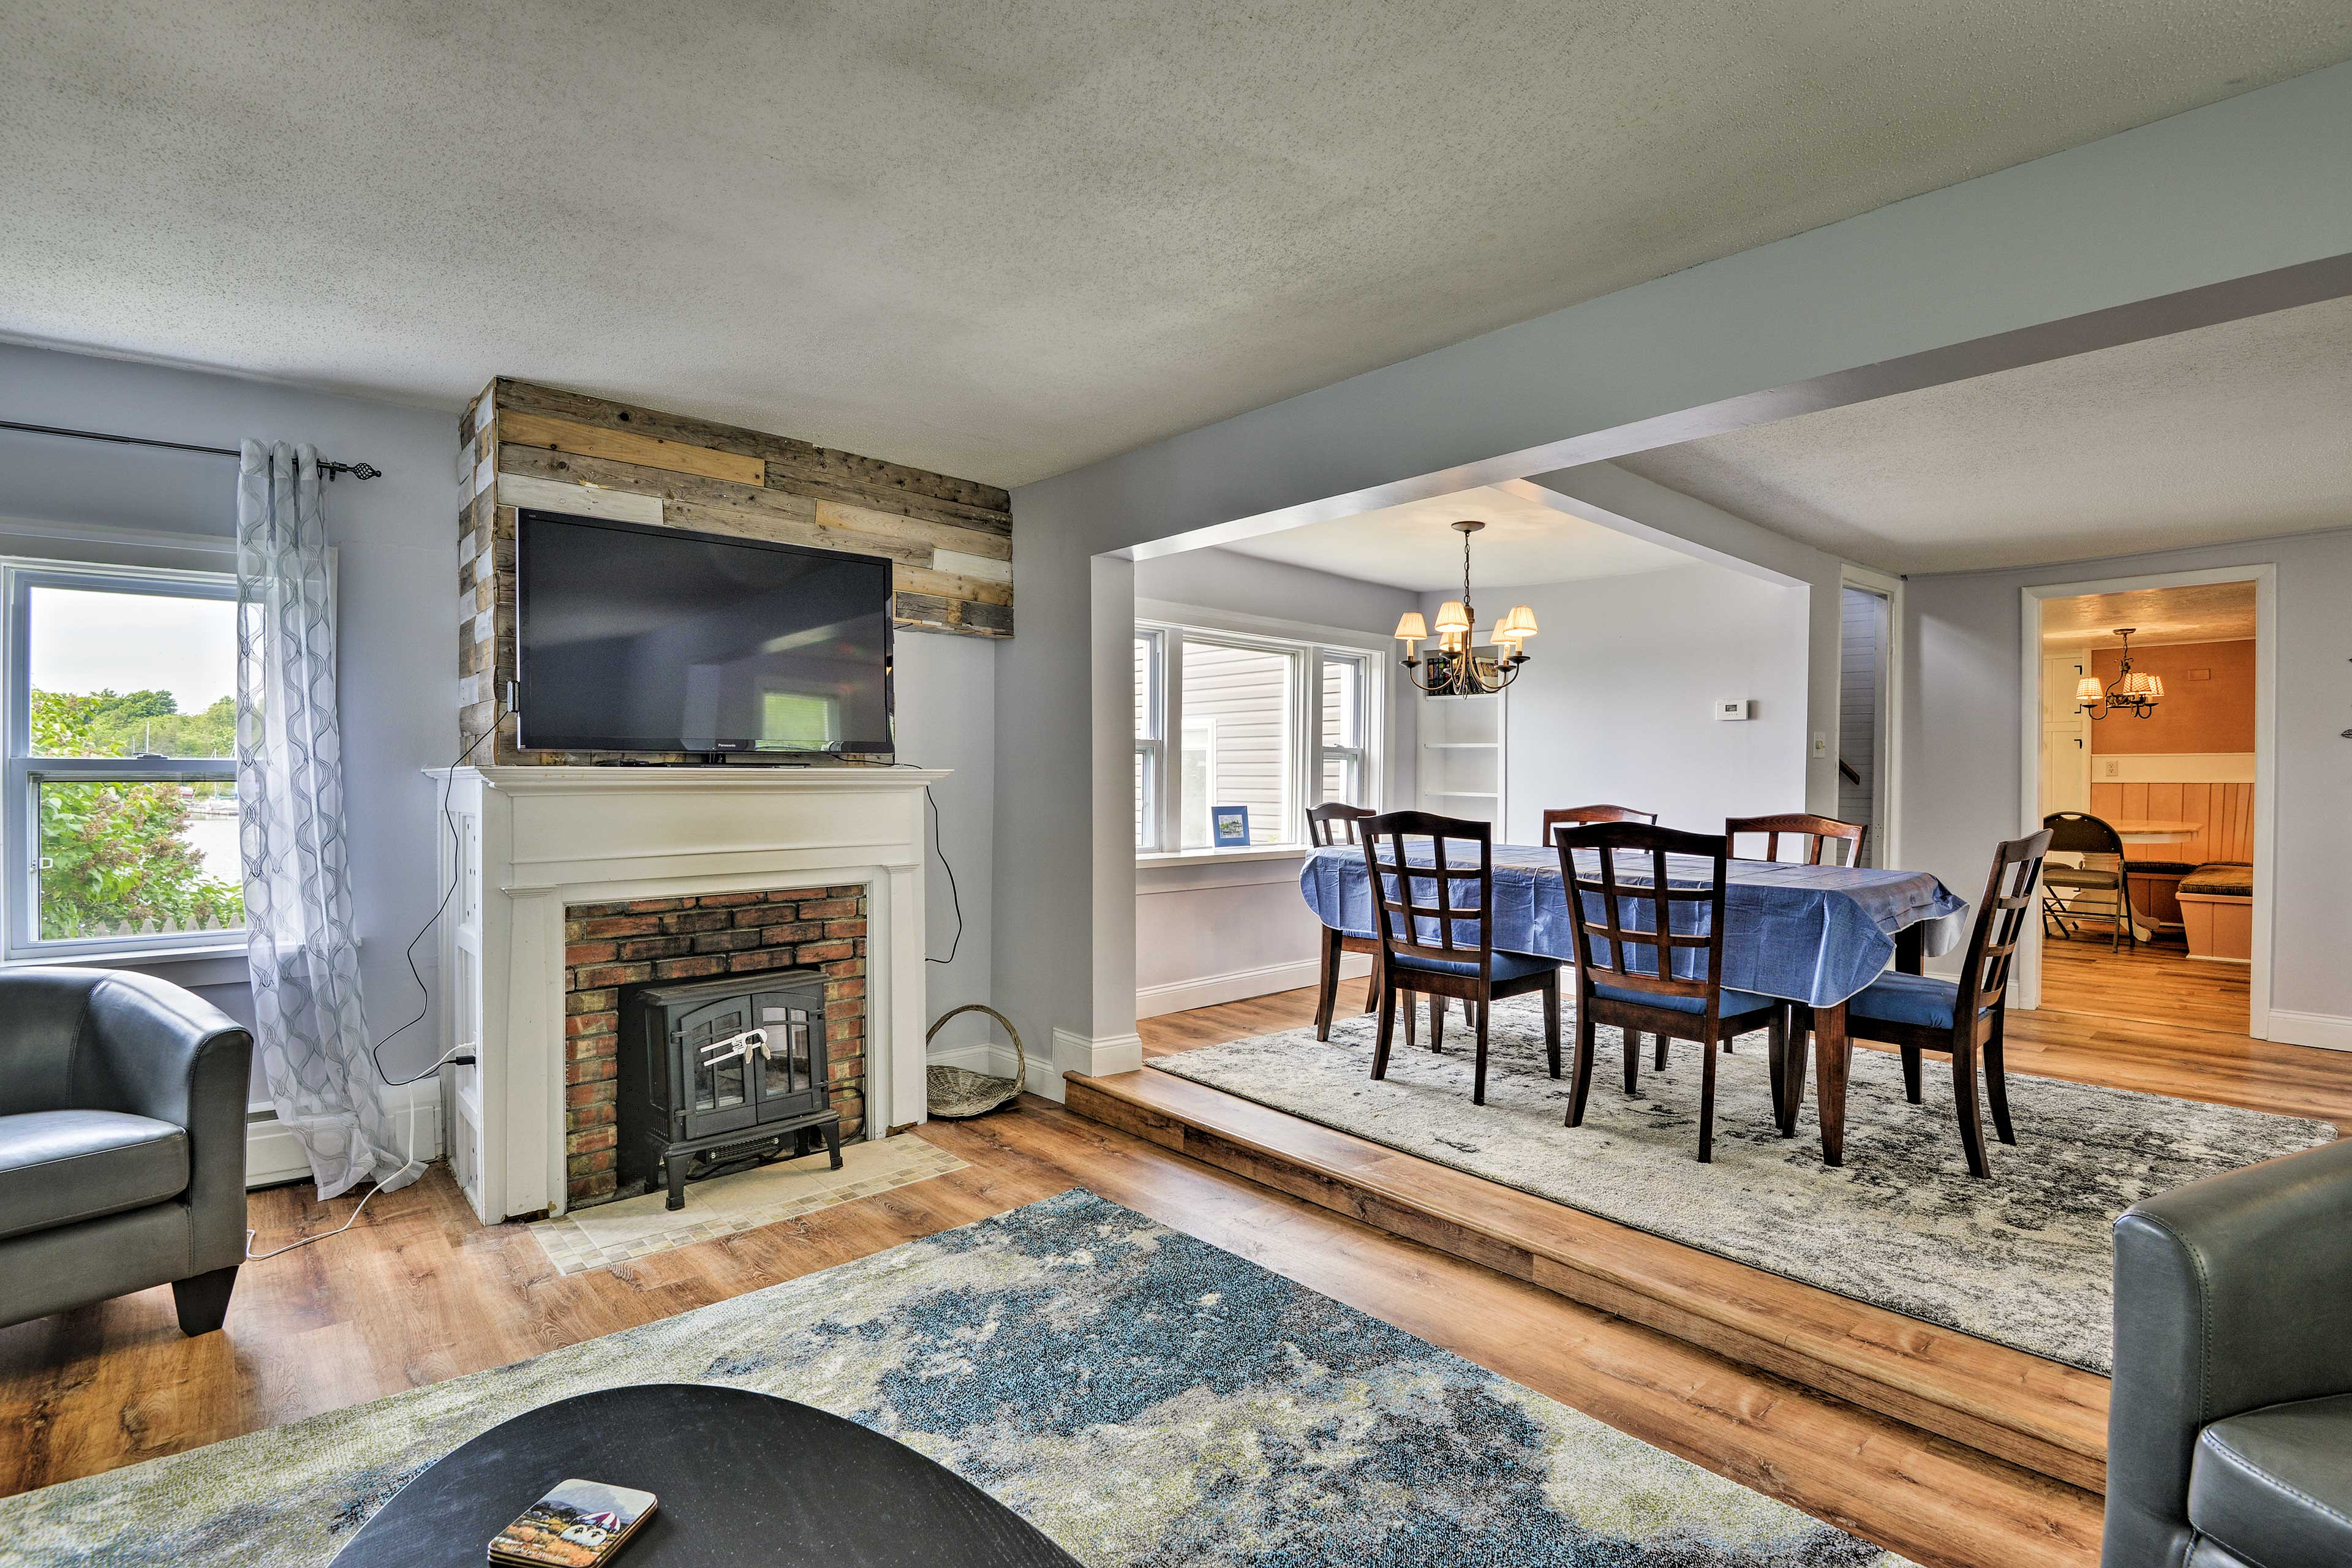 Spread out inside across over 1,900 square feet of living space.